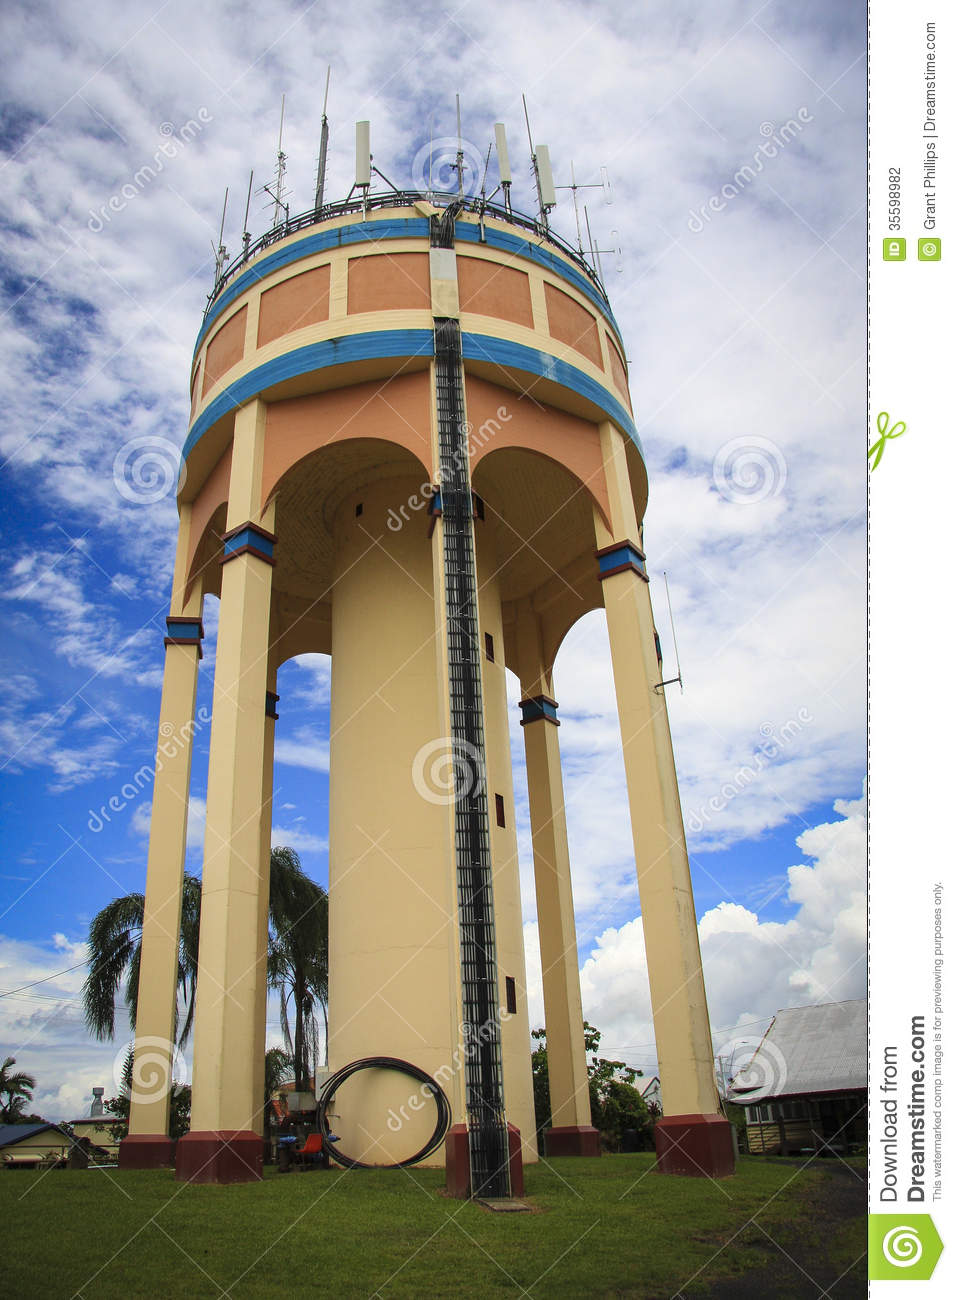 art deco water tower stock photo  image of deco  tropical